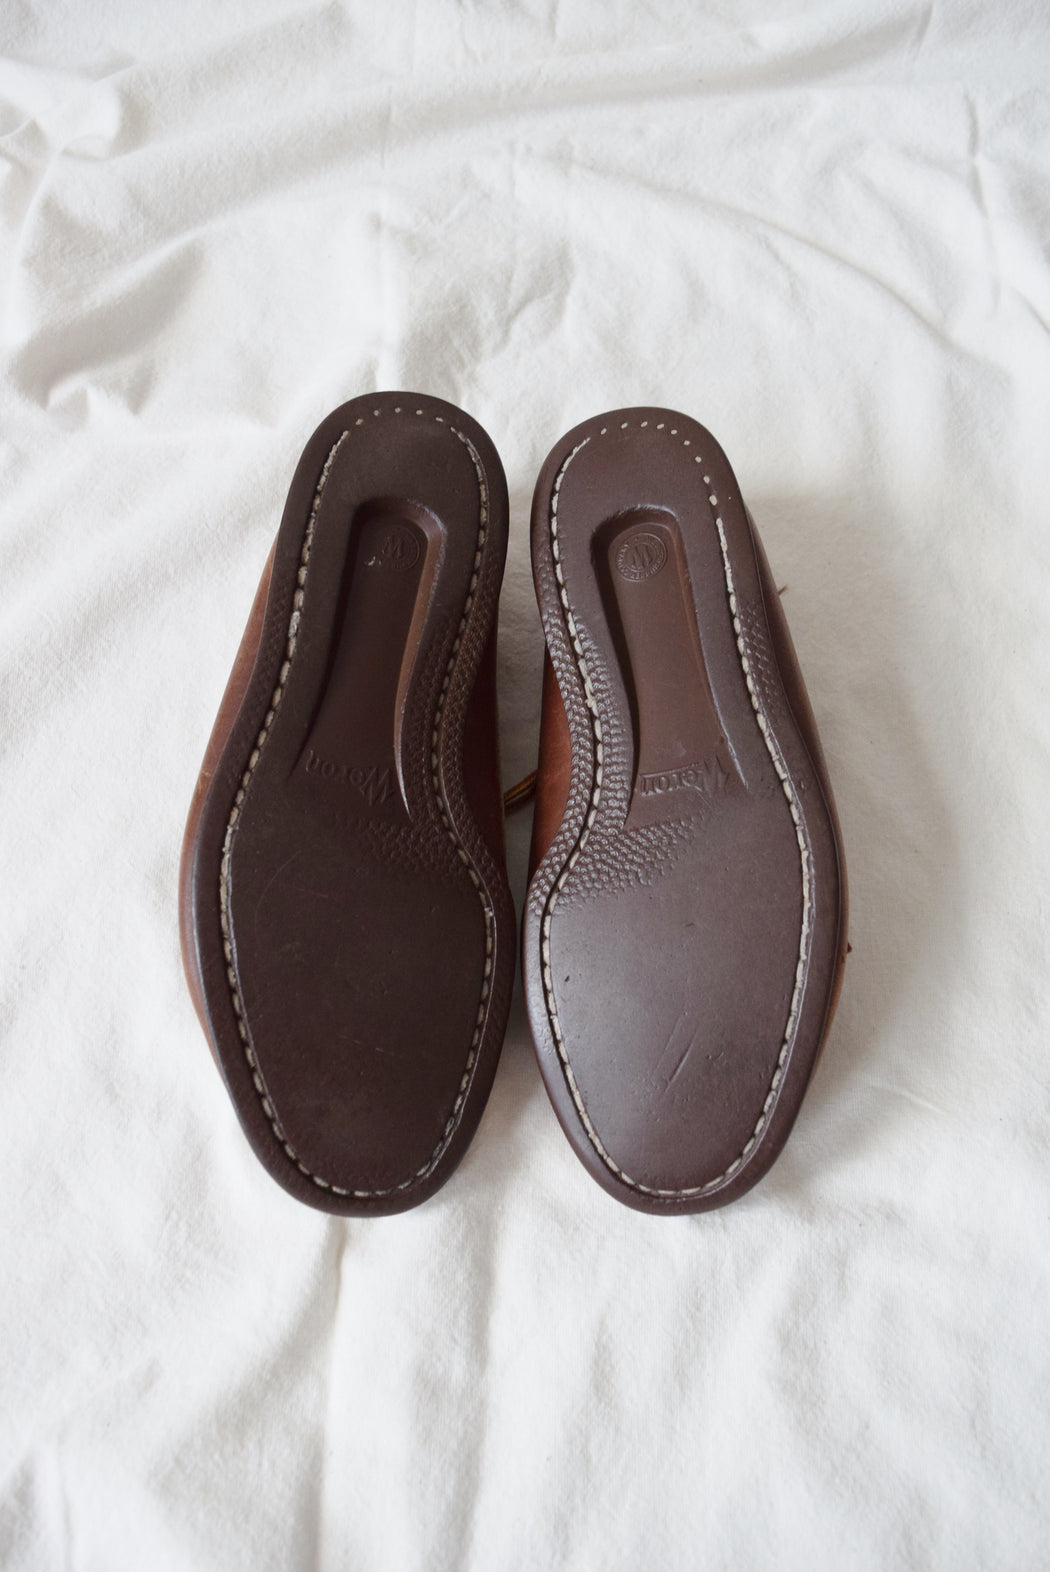 Vintage LL Bean Topsiders | Loafers | Boat Shoes | US 8-8.5 (EU 38-39, UK 6-6.5)